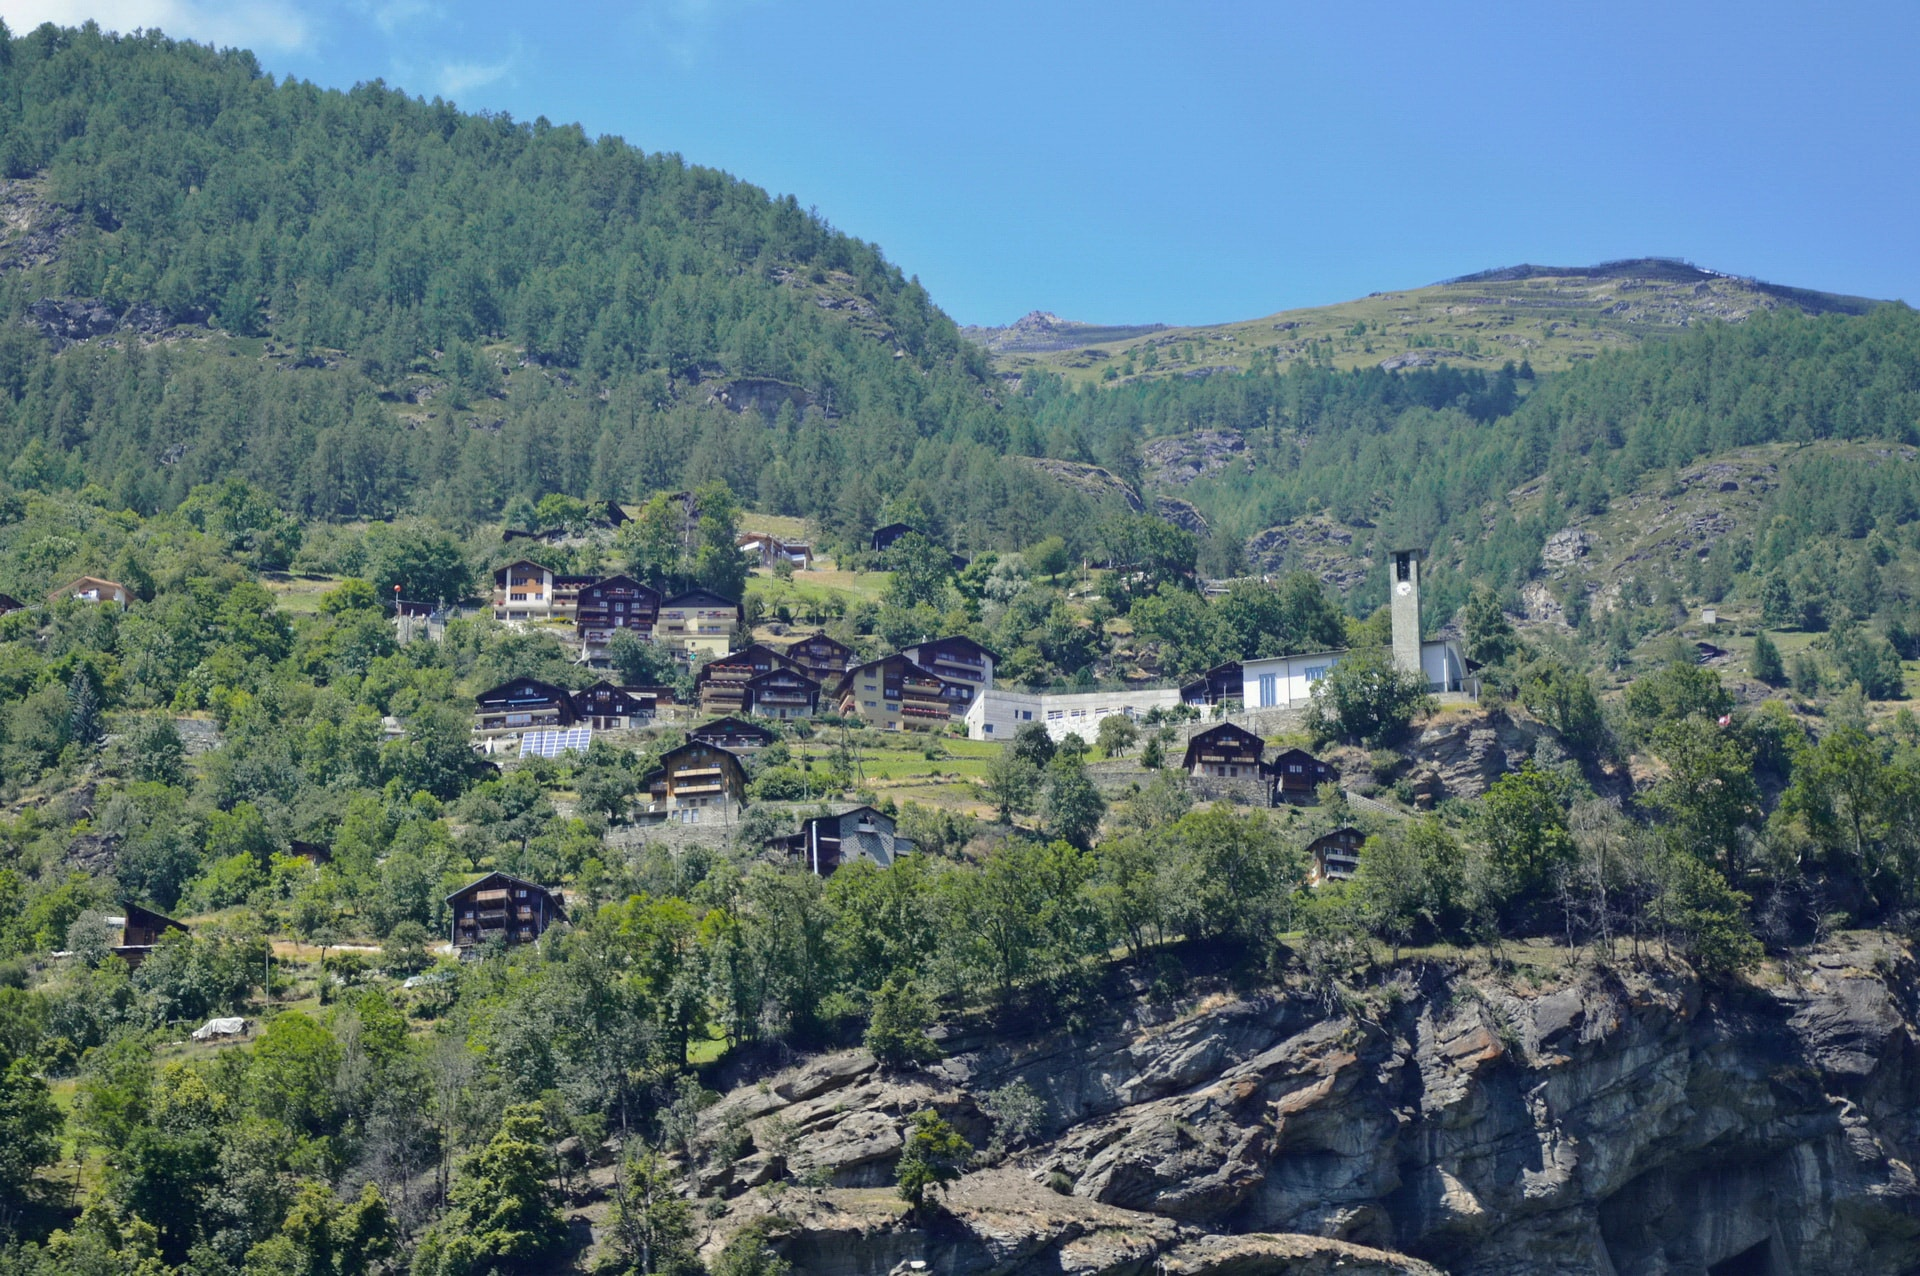 I saw this village on the edge of a cliff when approaching Zermatt